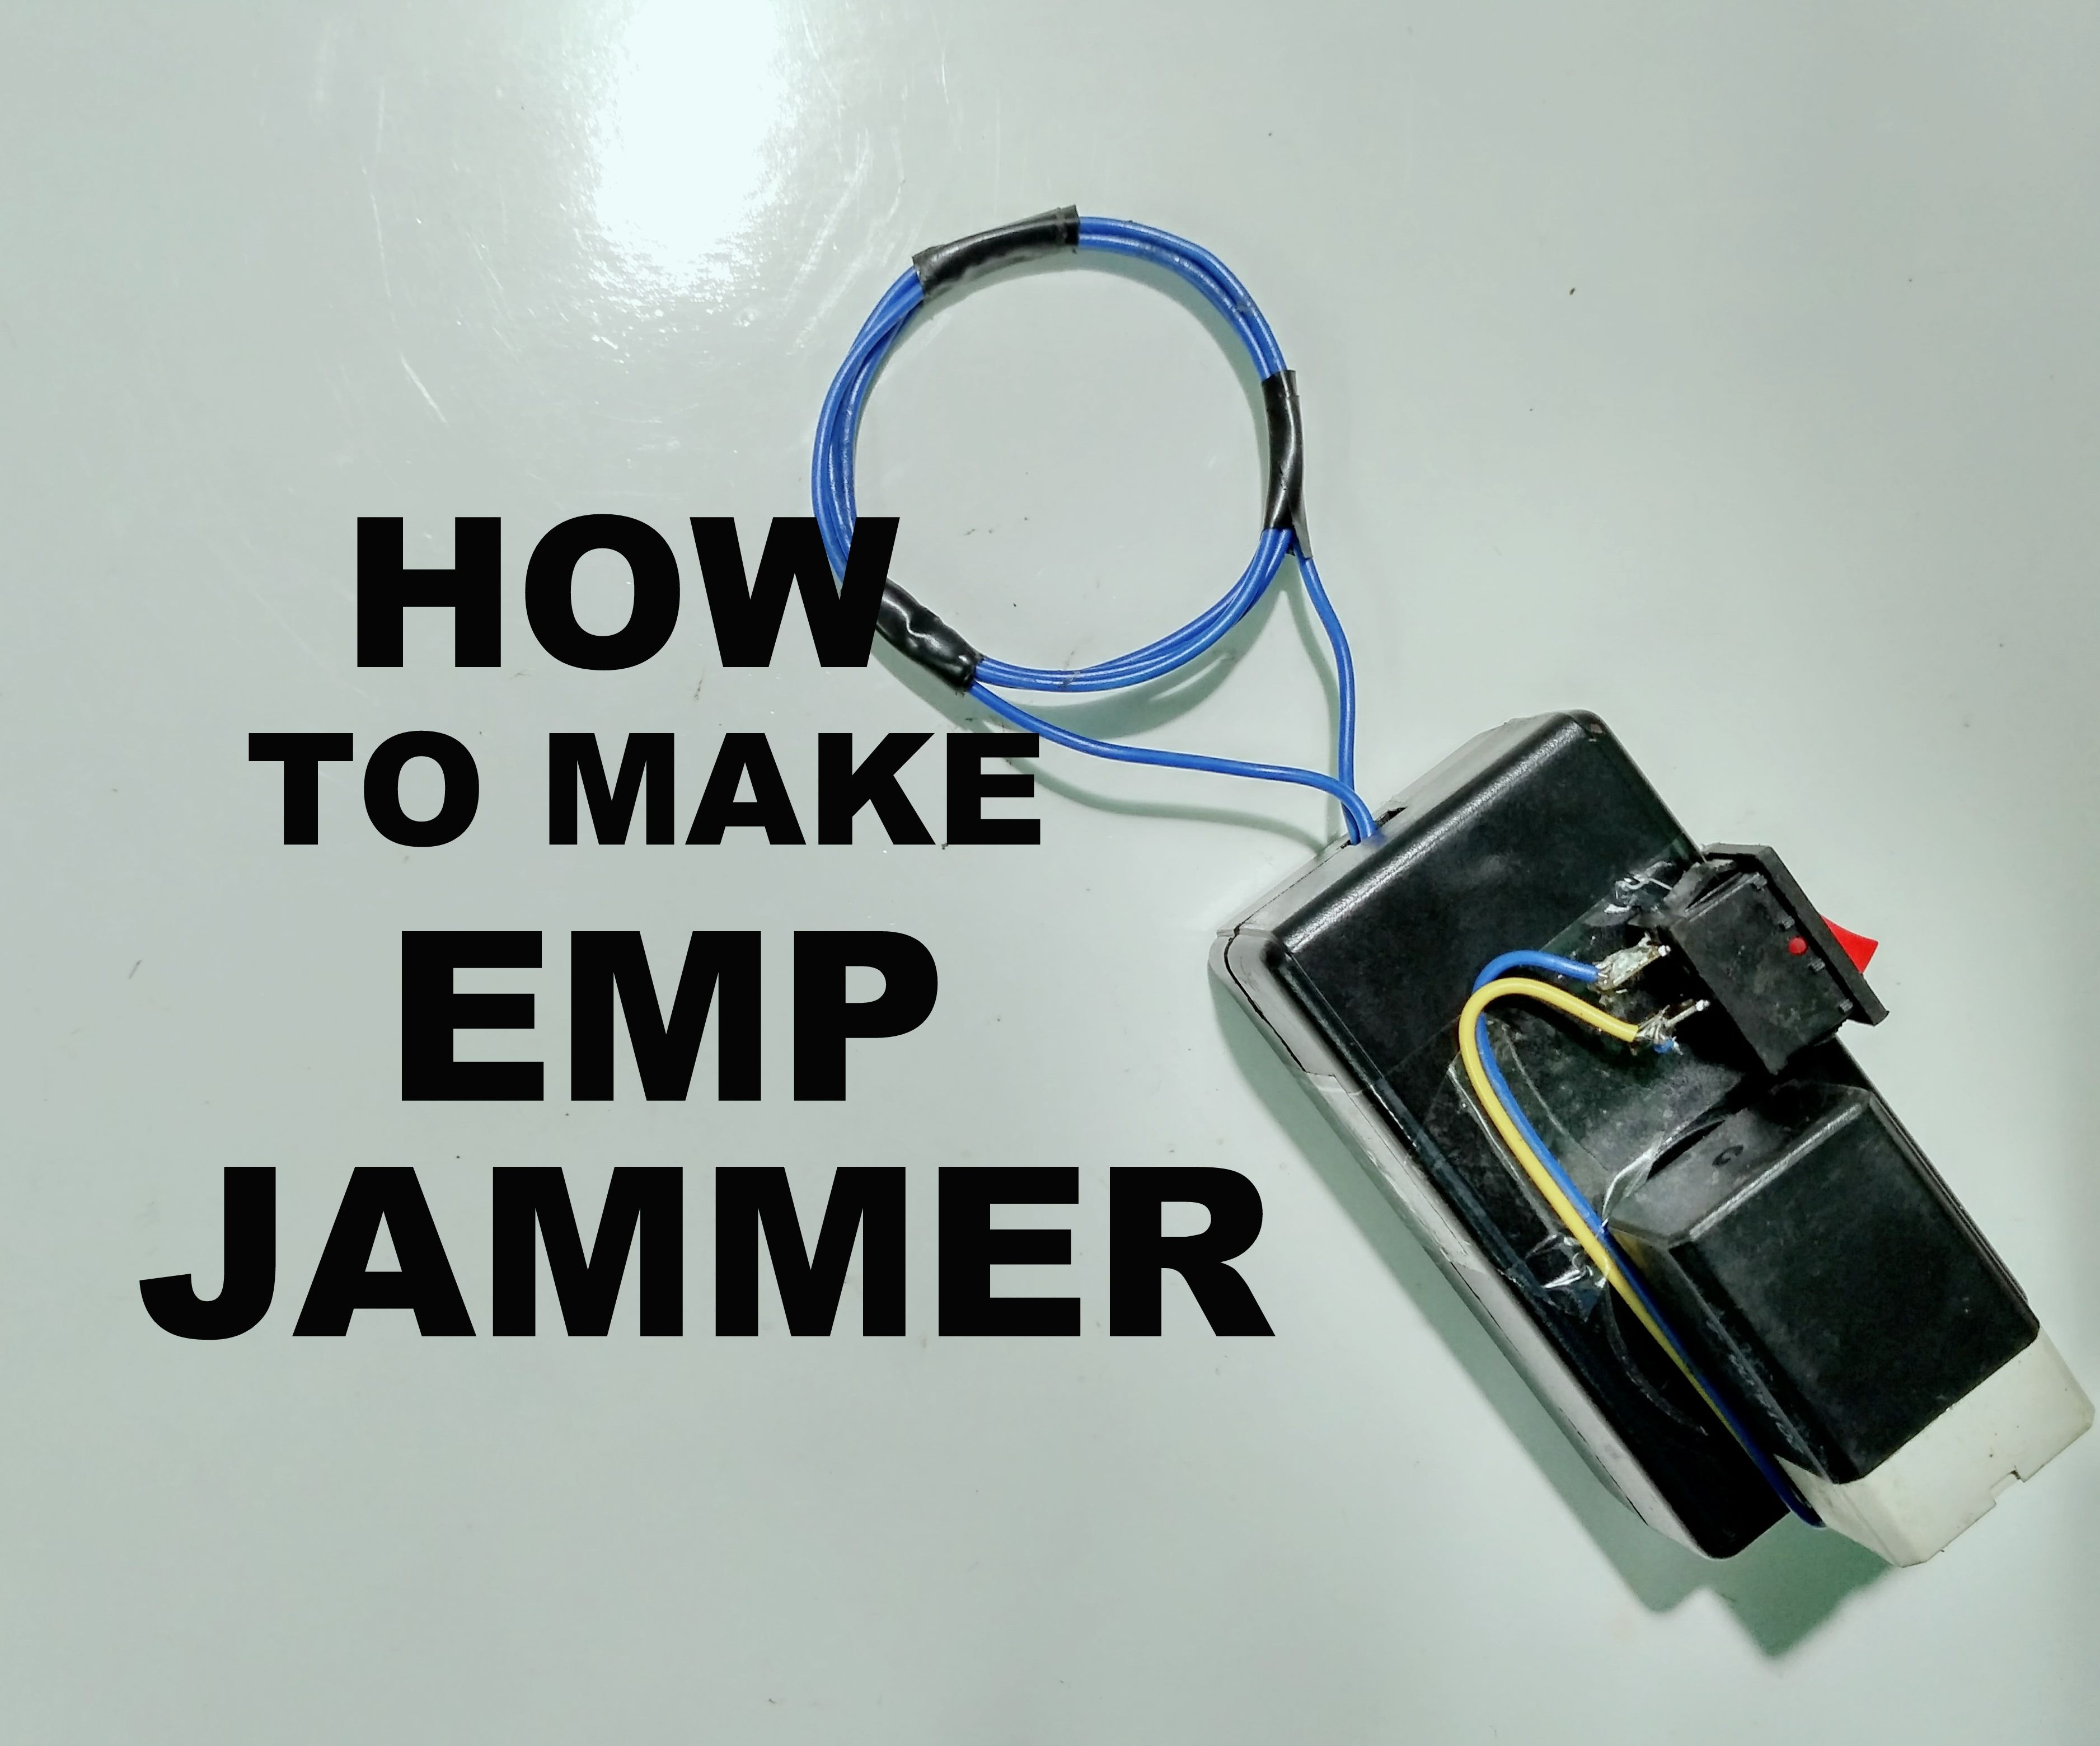 Simple Electromagnetic Pulse Circuit Diagram Detailed Wiring Diagrams How To Make An Emp Jammer 3 Steps With Pictures 555 Timer